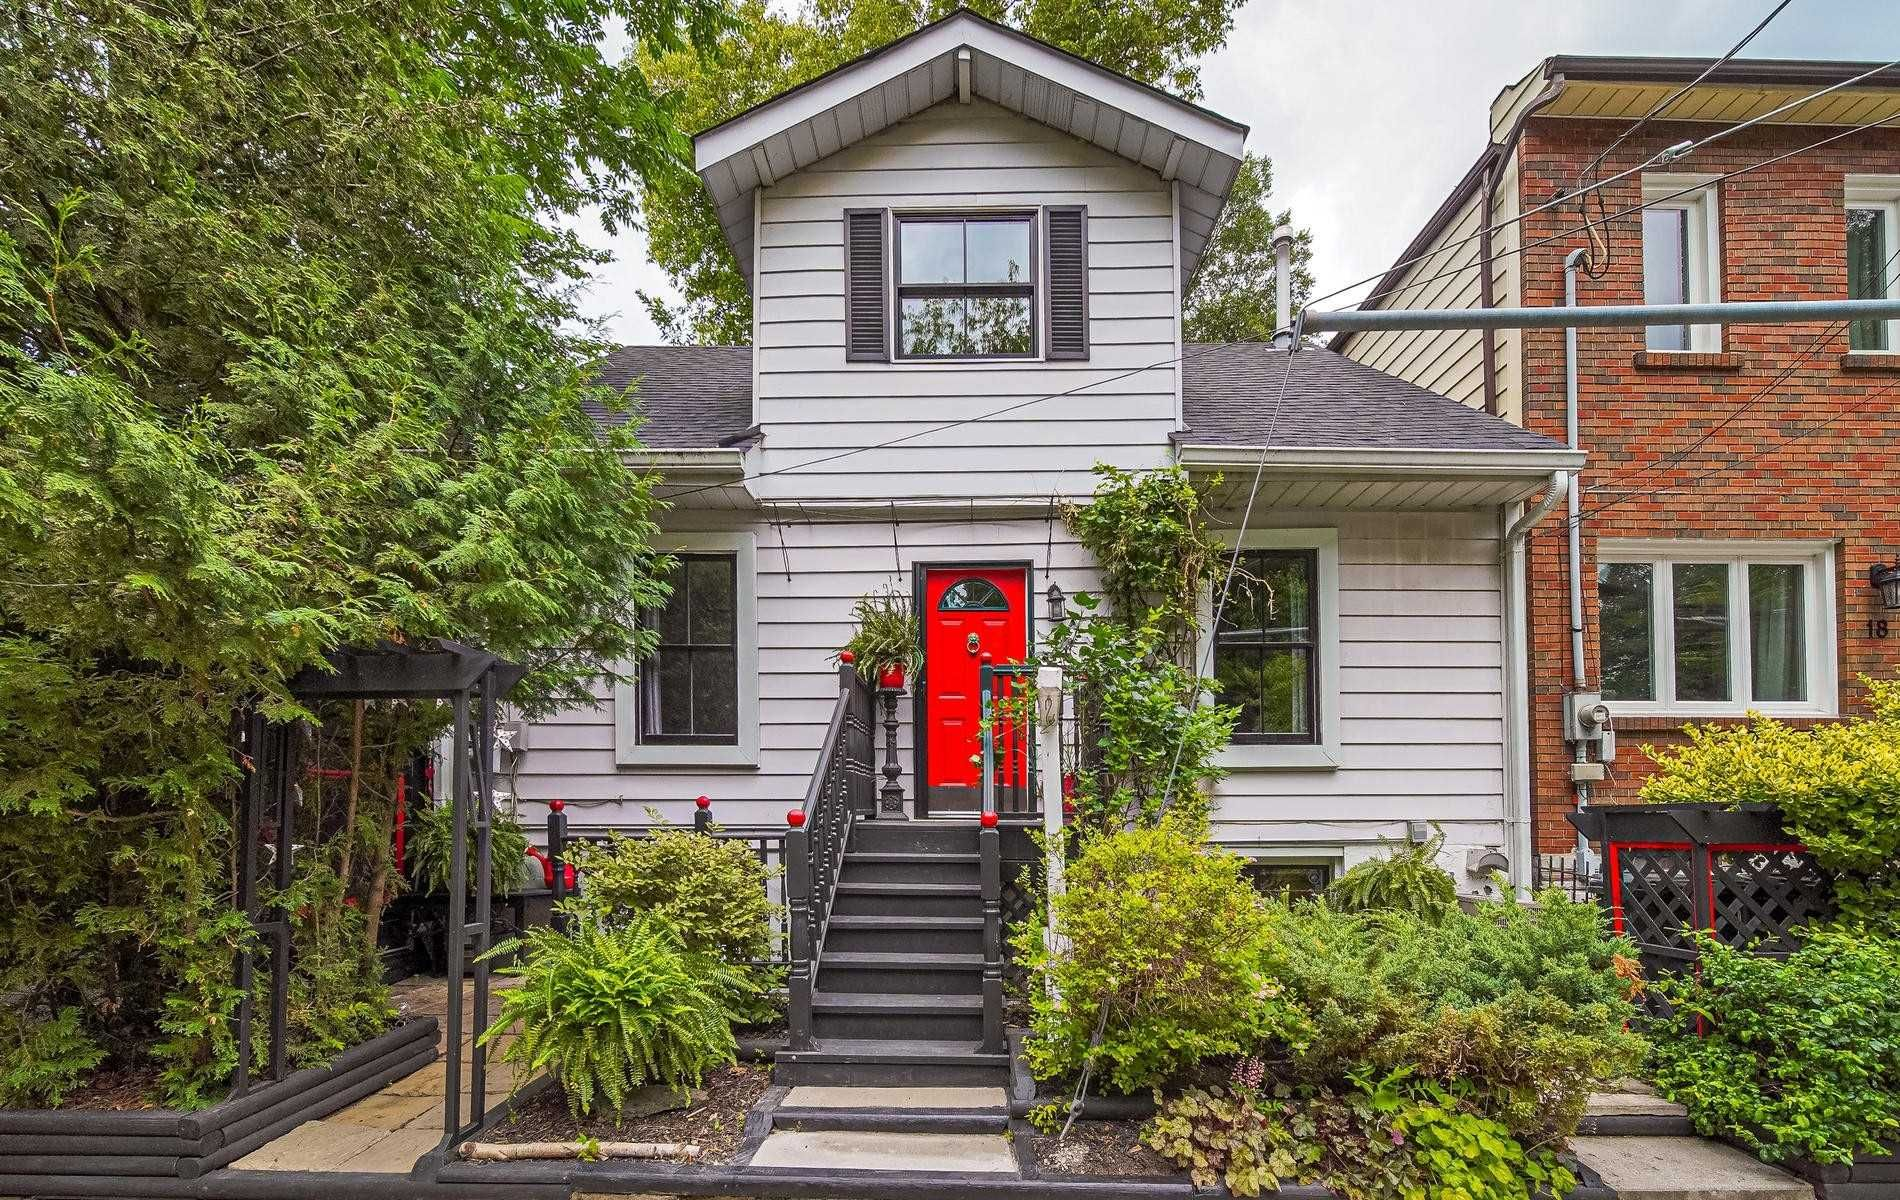 Main Photo: 14 Wardell Street in Toronto: South Riverdale House (2-Storey) for sale (Toronto E01)  : MLS®# E4847681